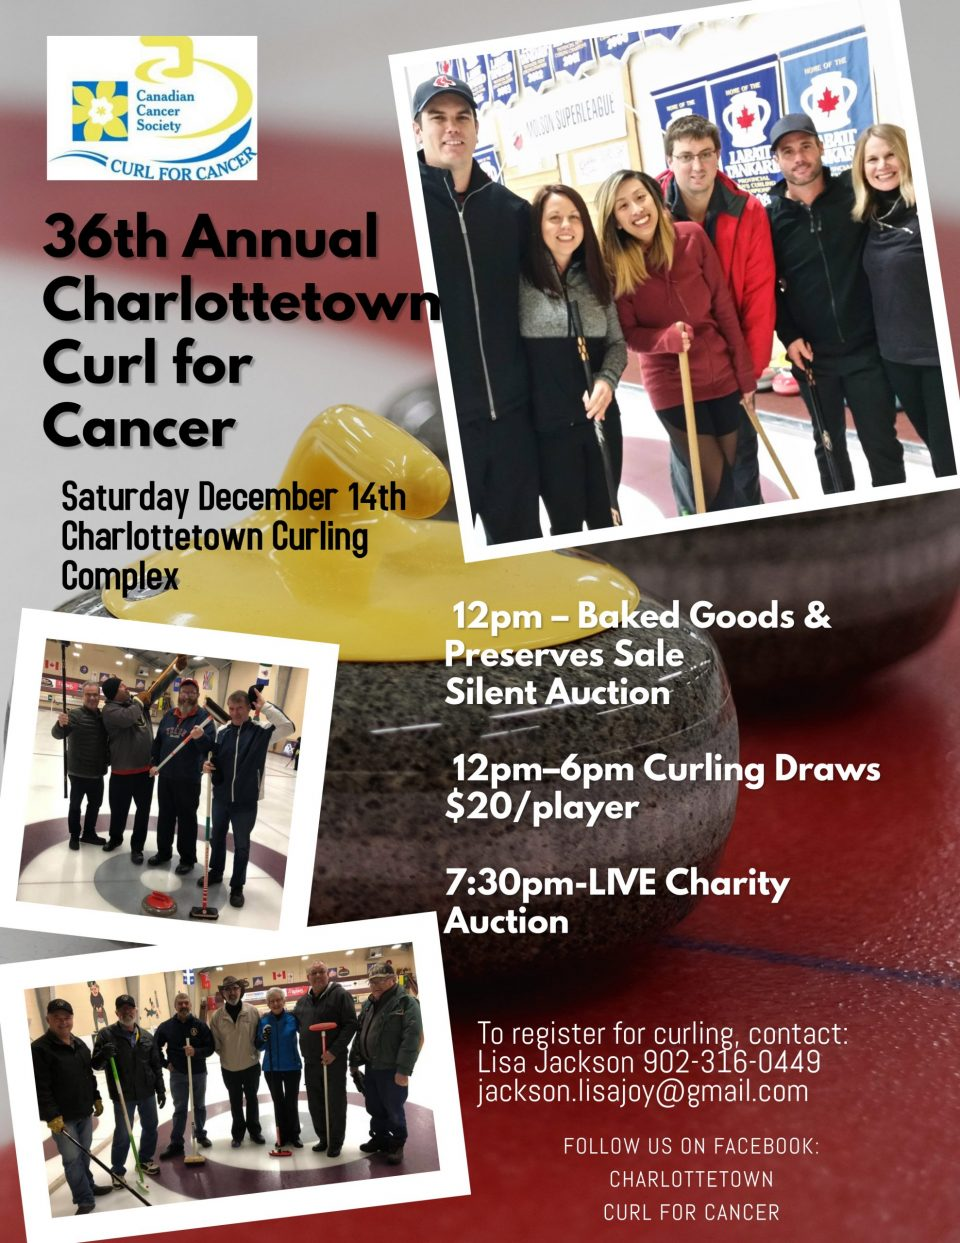 36th annual Charlottetown Curl for Cancer @ Charlottetown Curling Complex